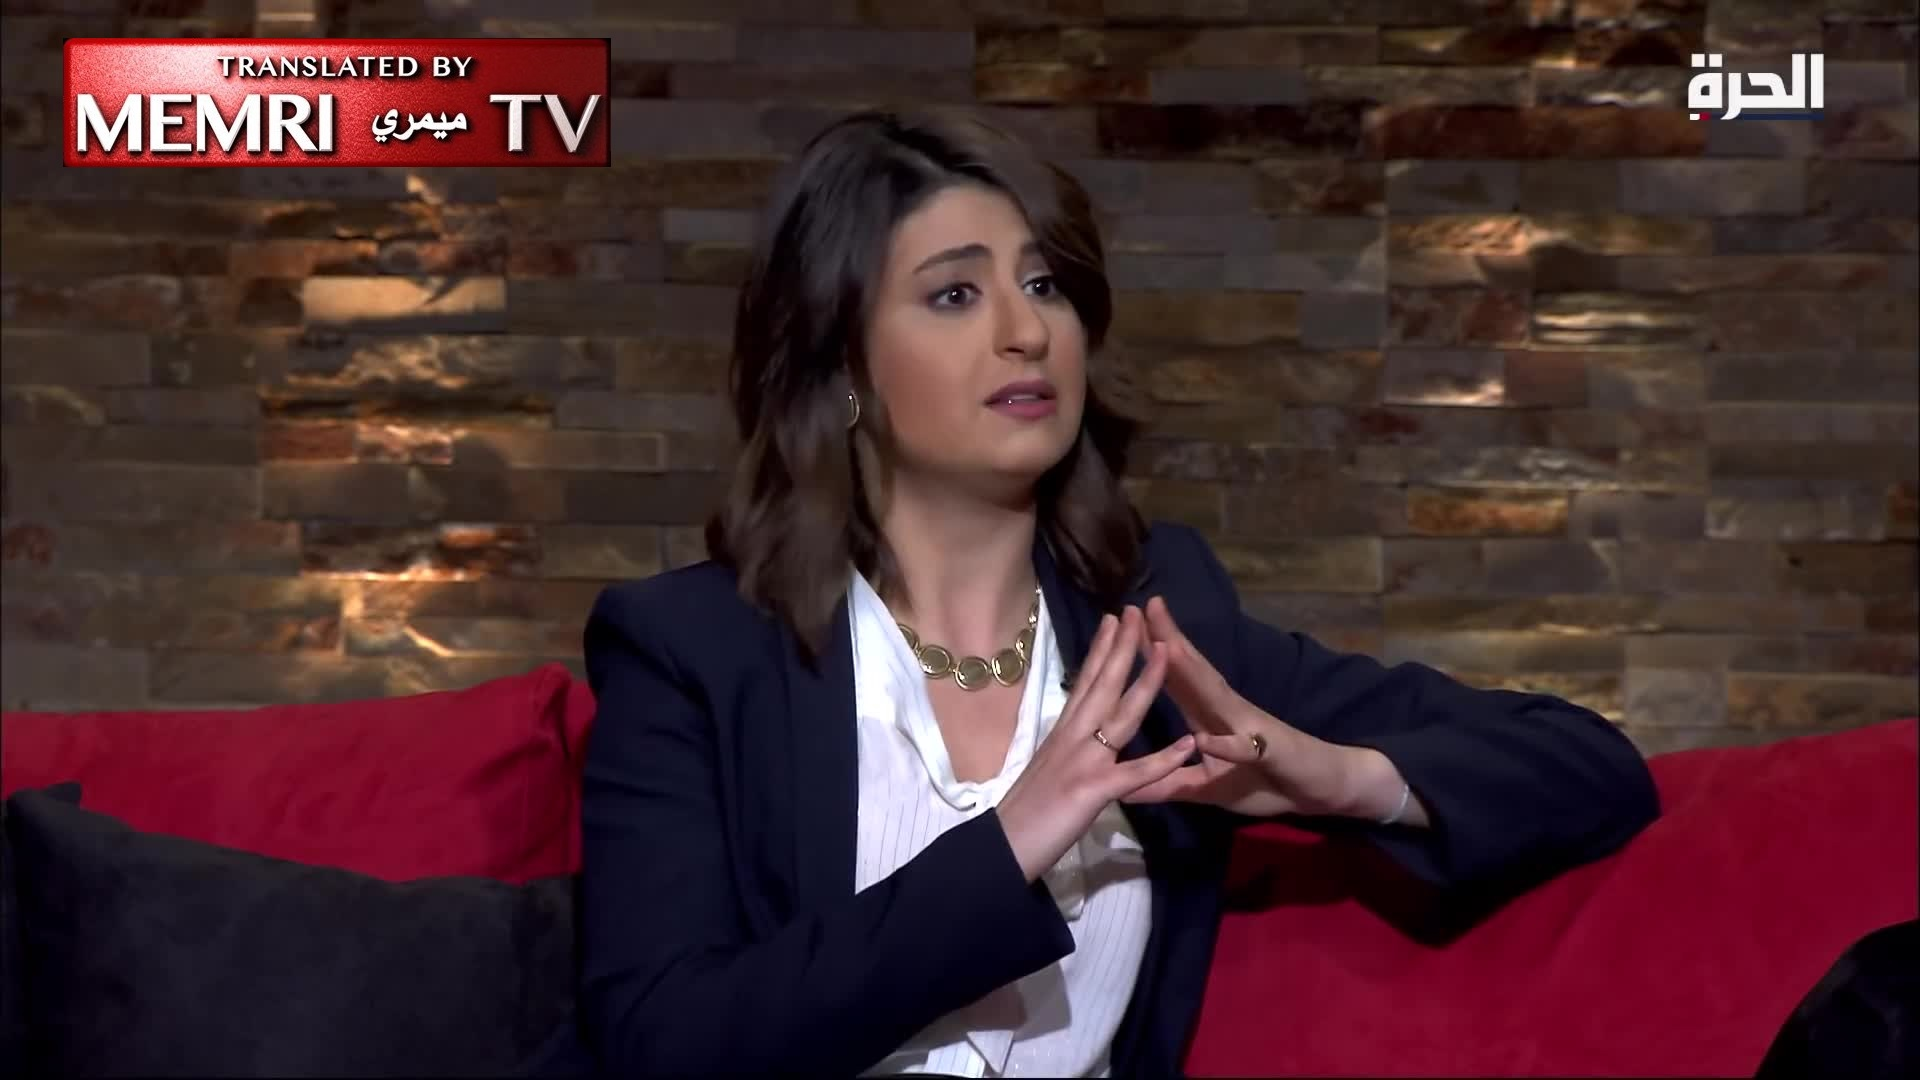 Paris-Based Lebanese Journalist Maya Khadra: French Politicians Adopt Islamist Rhetoric to Win Favors of Muslim Majority in Parisian Suburbs